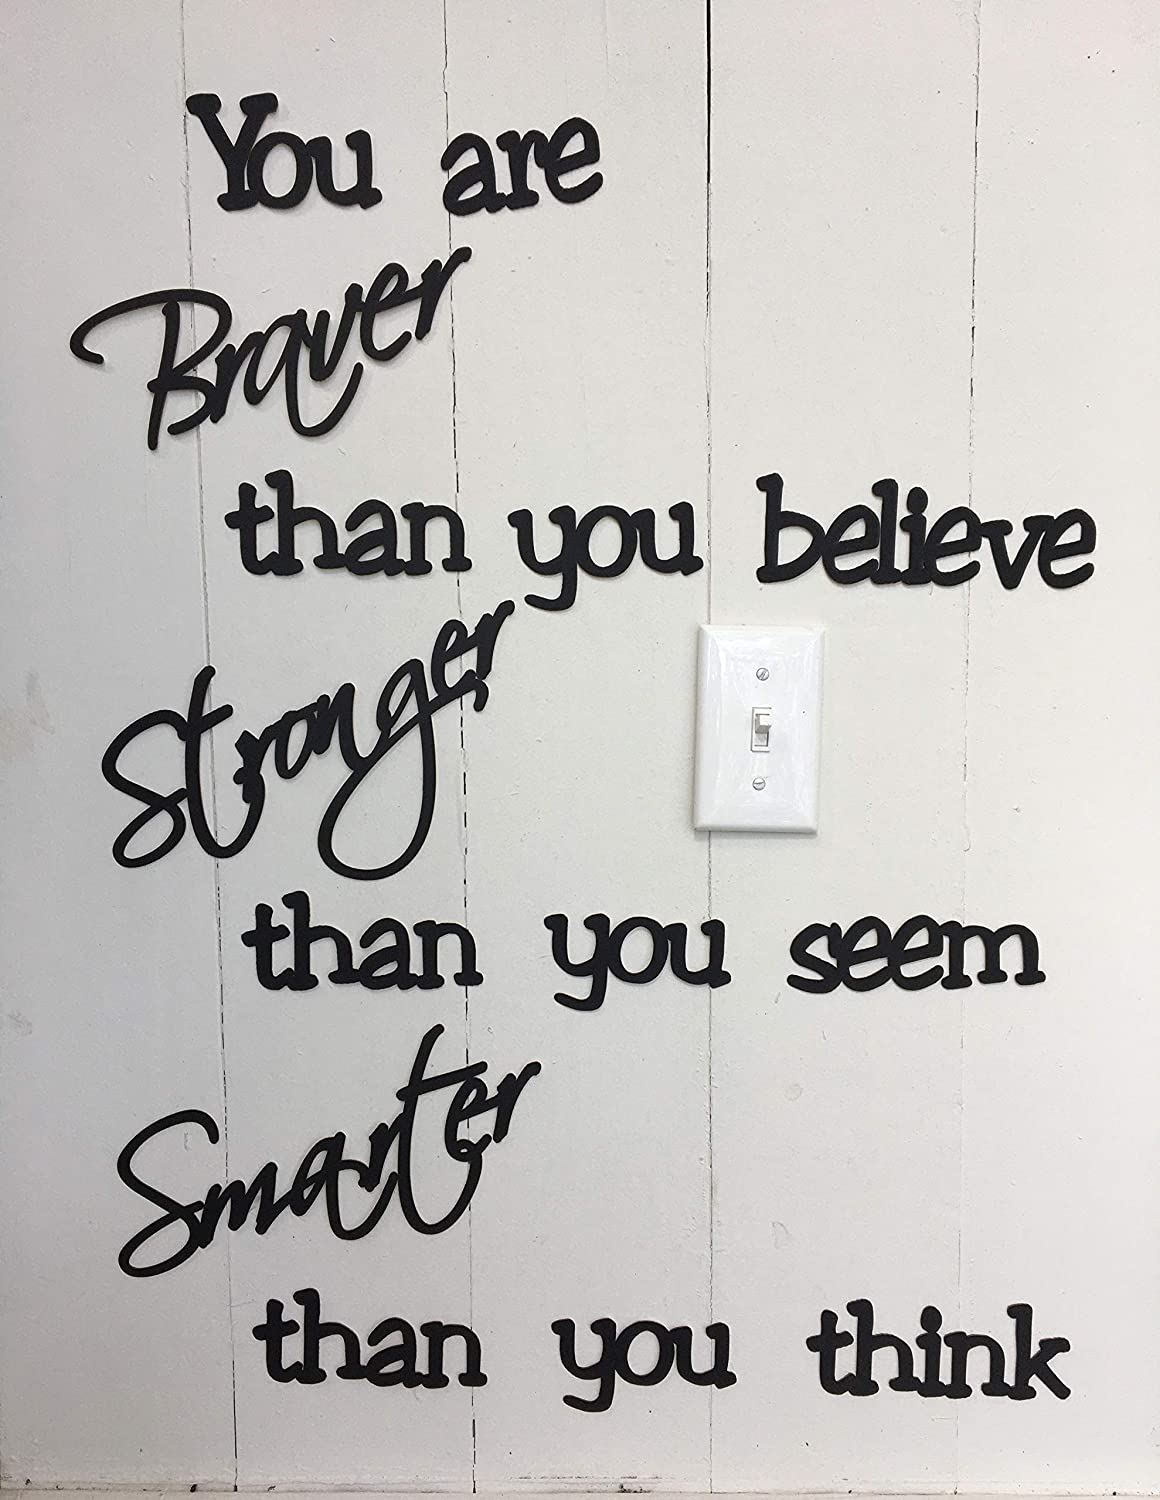 You are Braver than you believe, 10 minute install, Wall Quotes sayings for Family Home Friends Not a Vinyl Decal Removable using Sticky Putty Paintable reusable Art Wall Décor wedding Gift